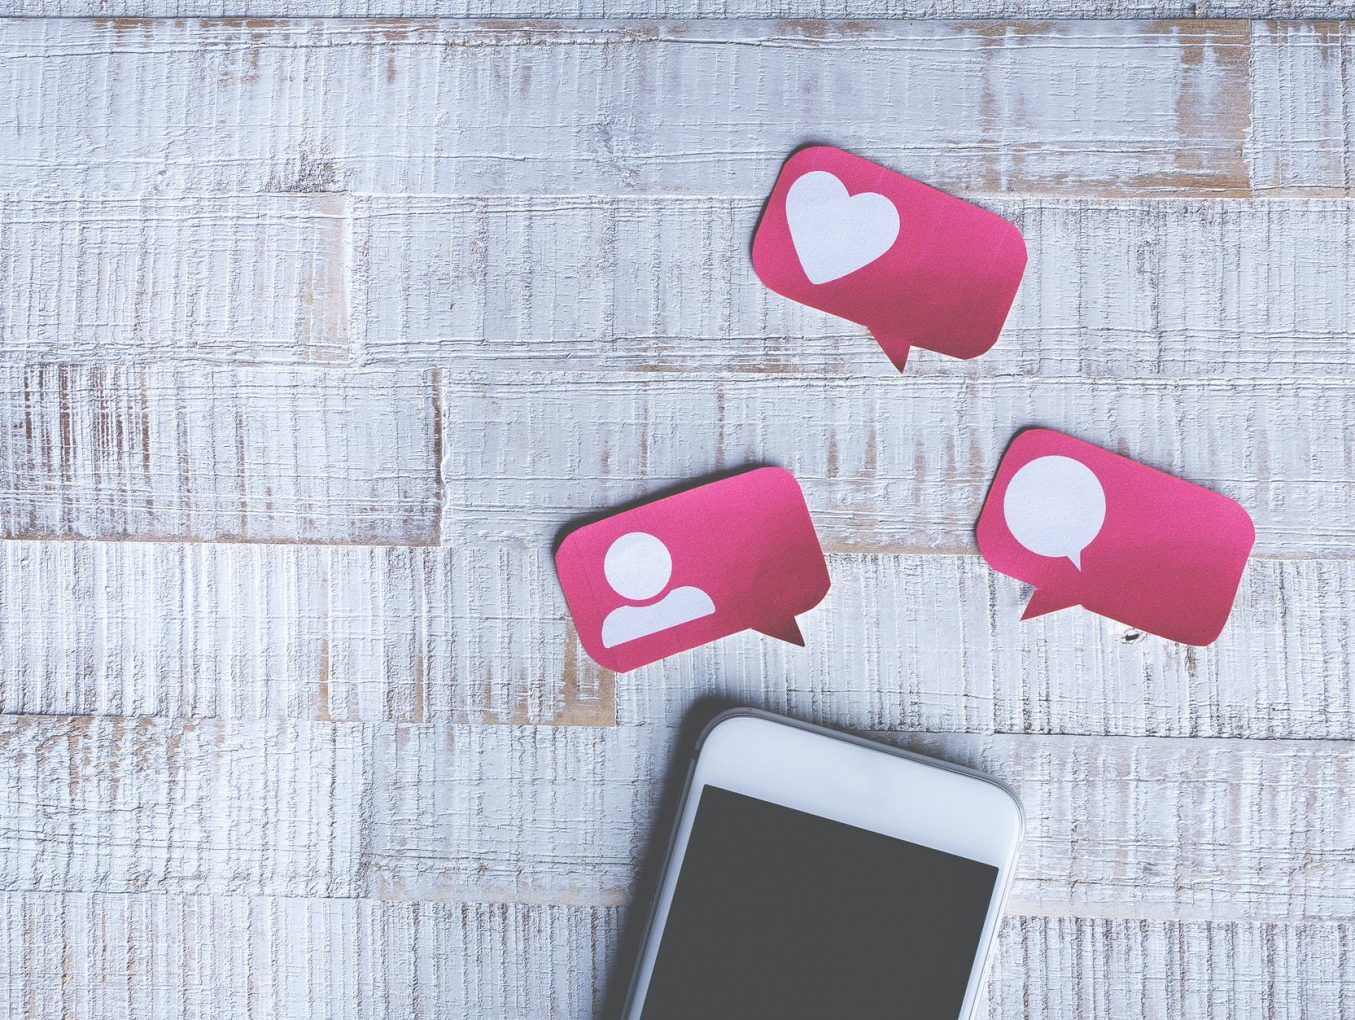 5 social media trends you can try right now